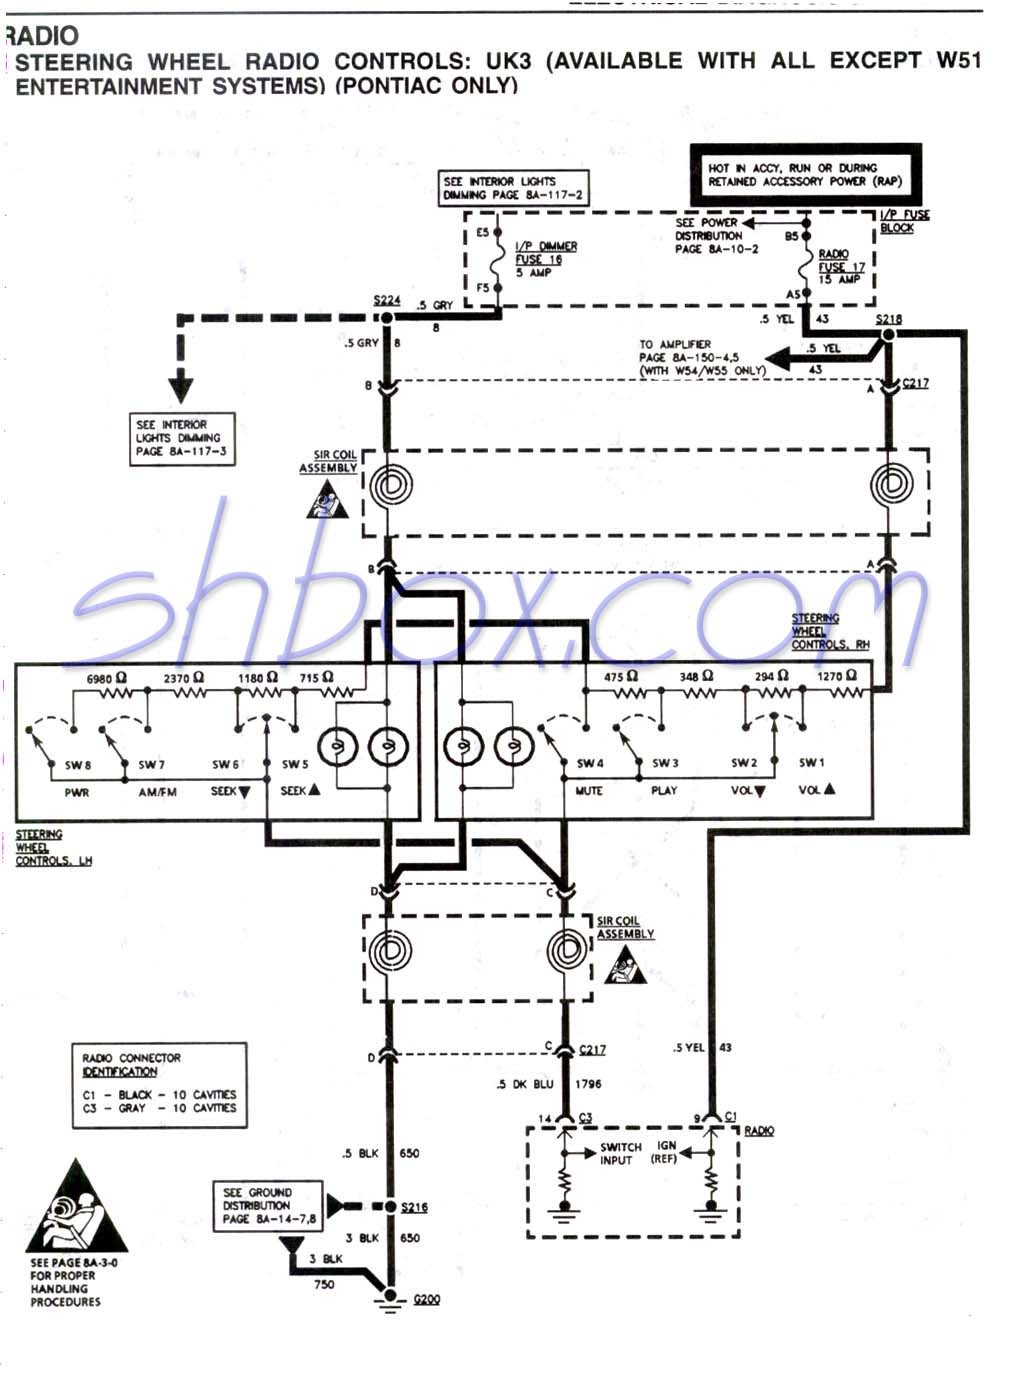 Obd2 Wiring Diagram 2004 Oldsmobile Library Of Diagrams Ford Obd Ii Example Electrical Circuit U2022 Rh Labs Labs4 Fun Obdo To Obd1 Pinout